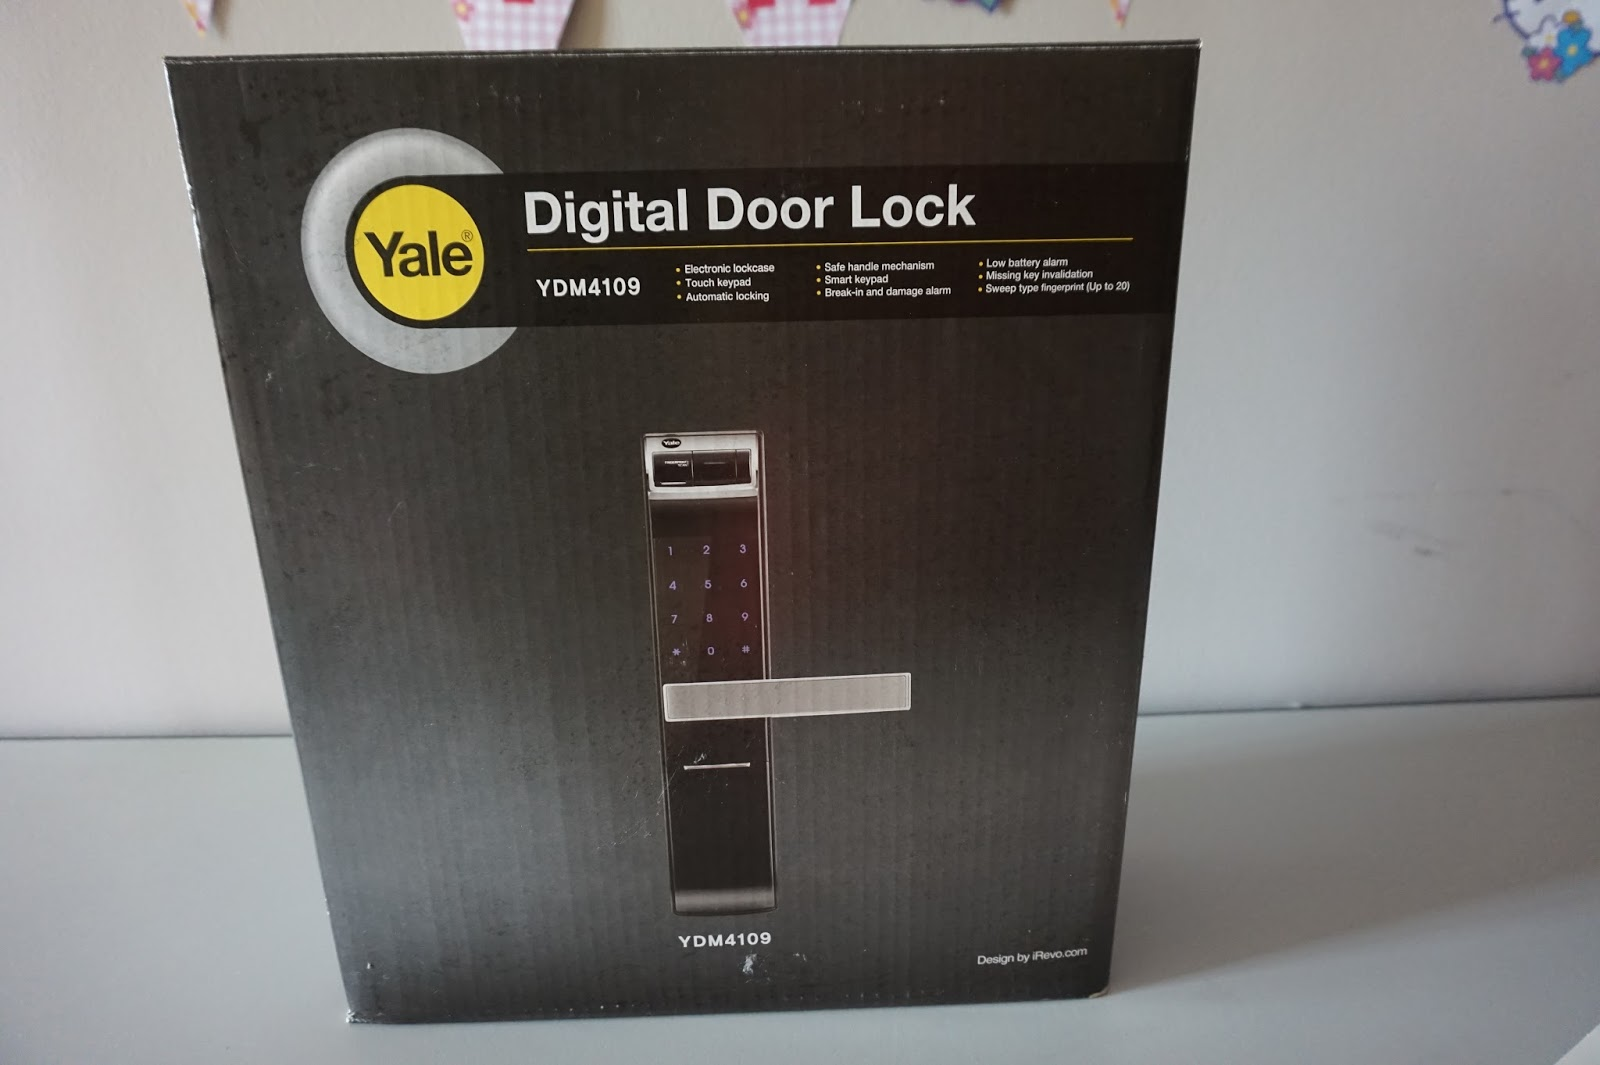 MS LEONG JOANNE: Yale YDM 4109 Digital Door Lock